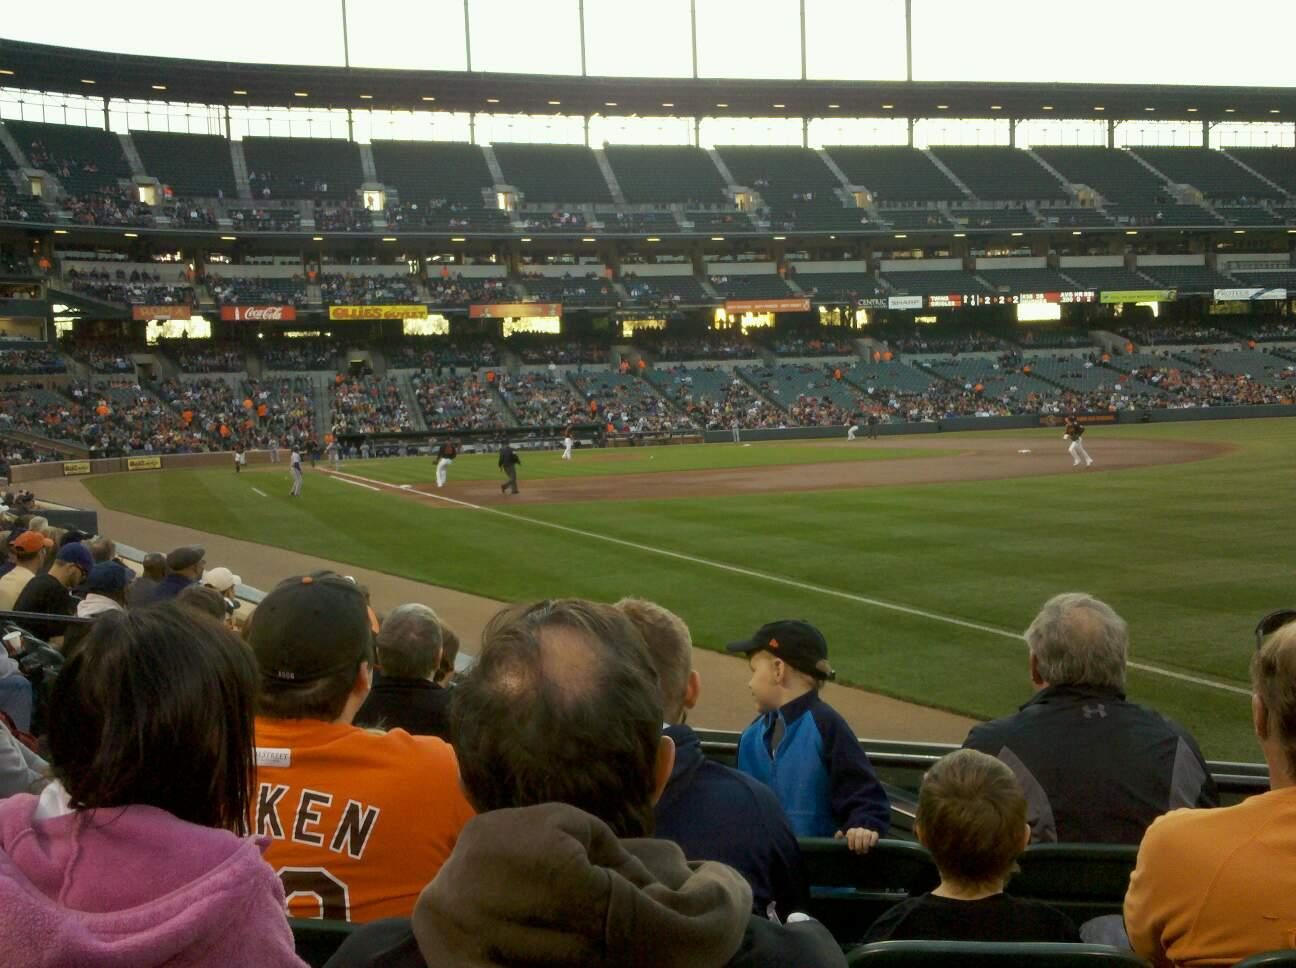 Oriole Park at Camden Yards Section 8 Row 7 Seat 8